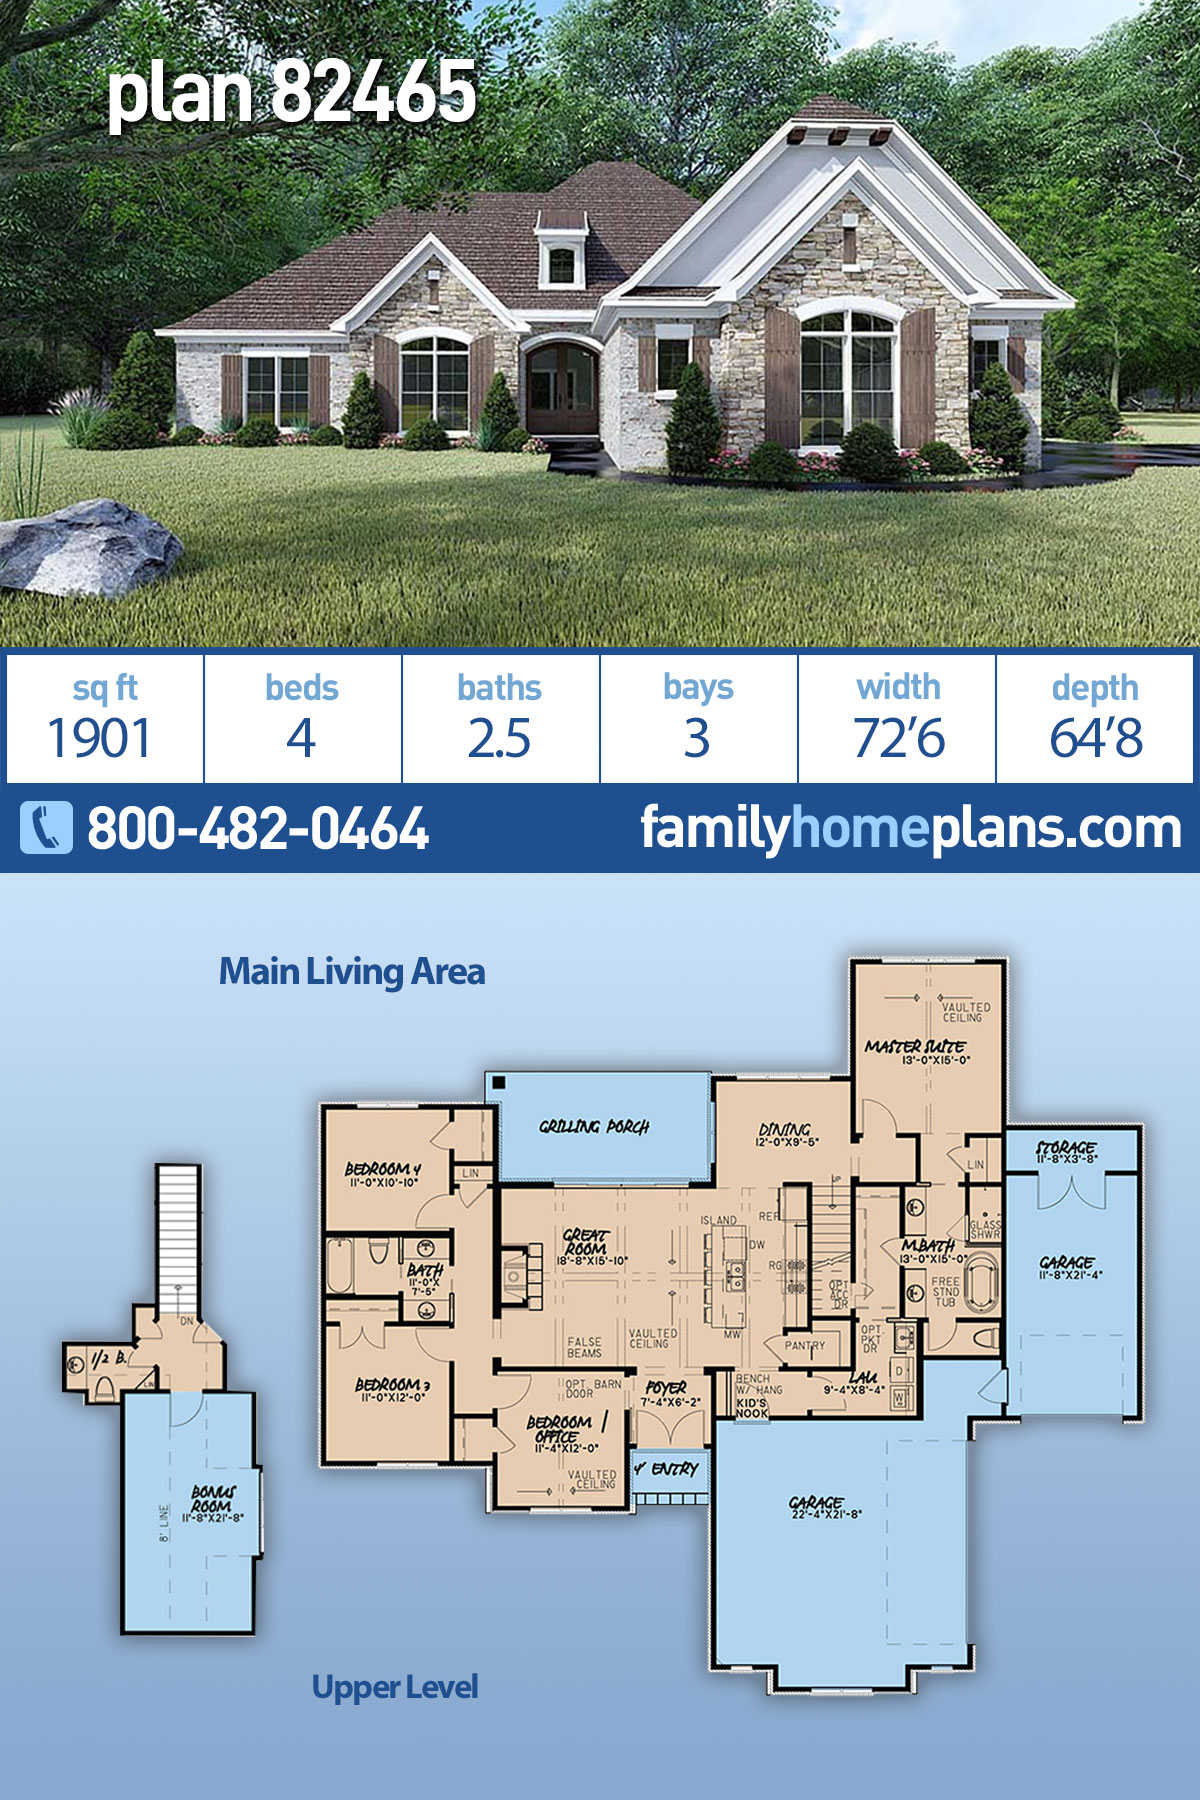 European, French Country, Traditional House Plan 82465 with 4 Beds, 3 Baths, 3 Car Garage